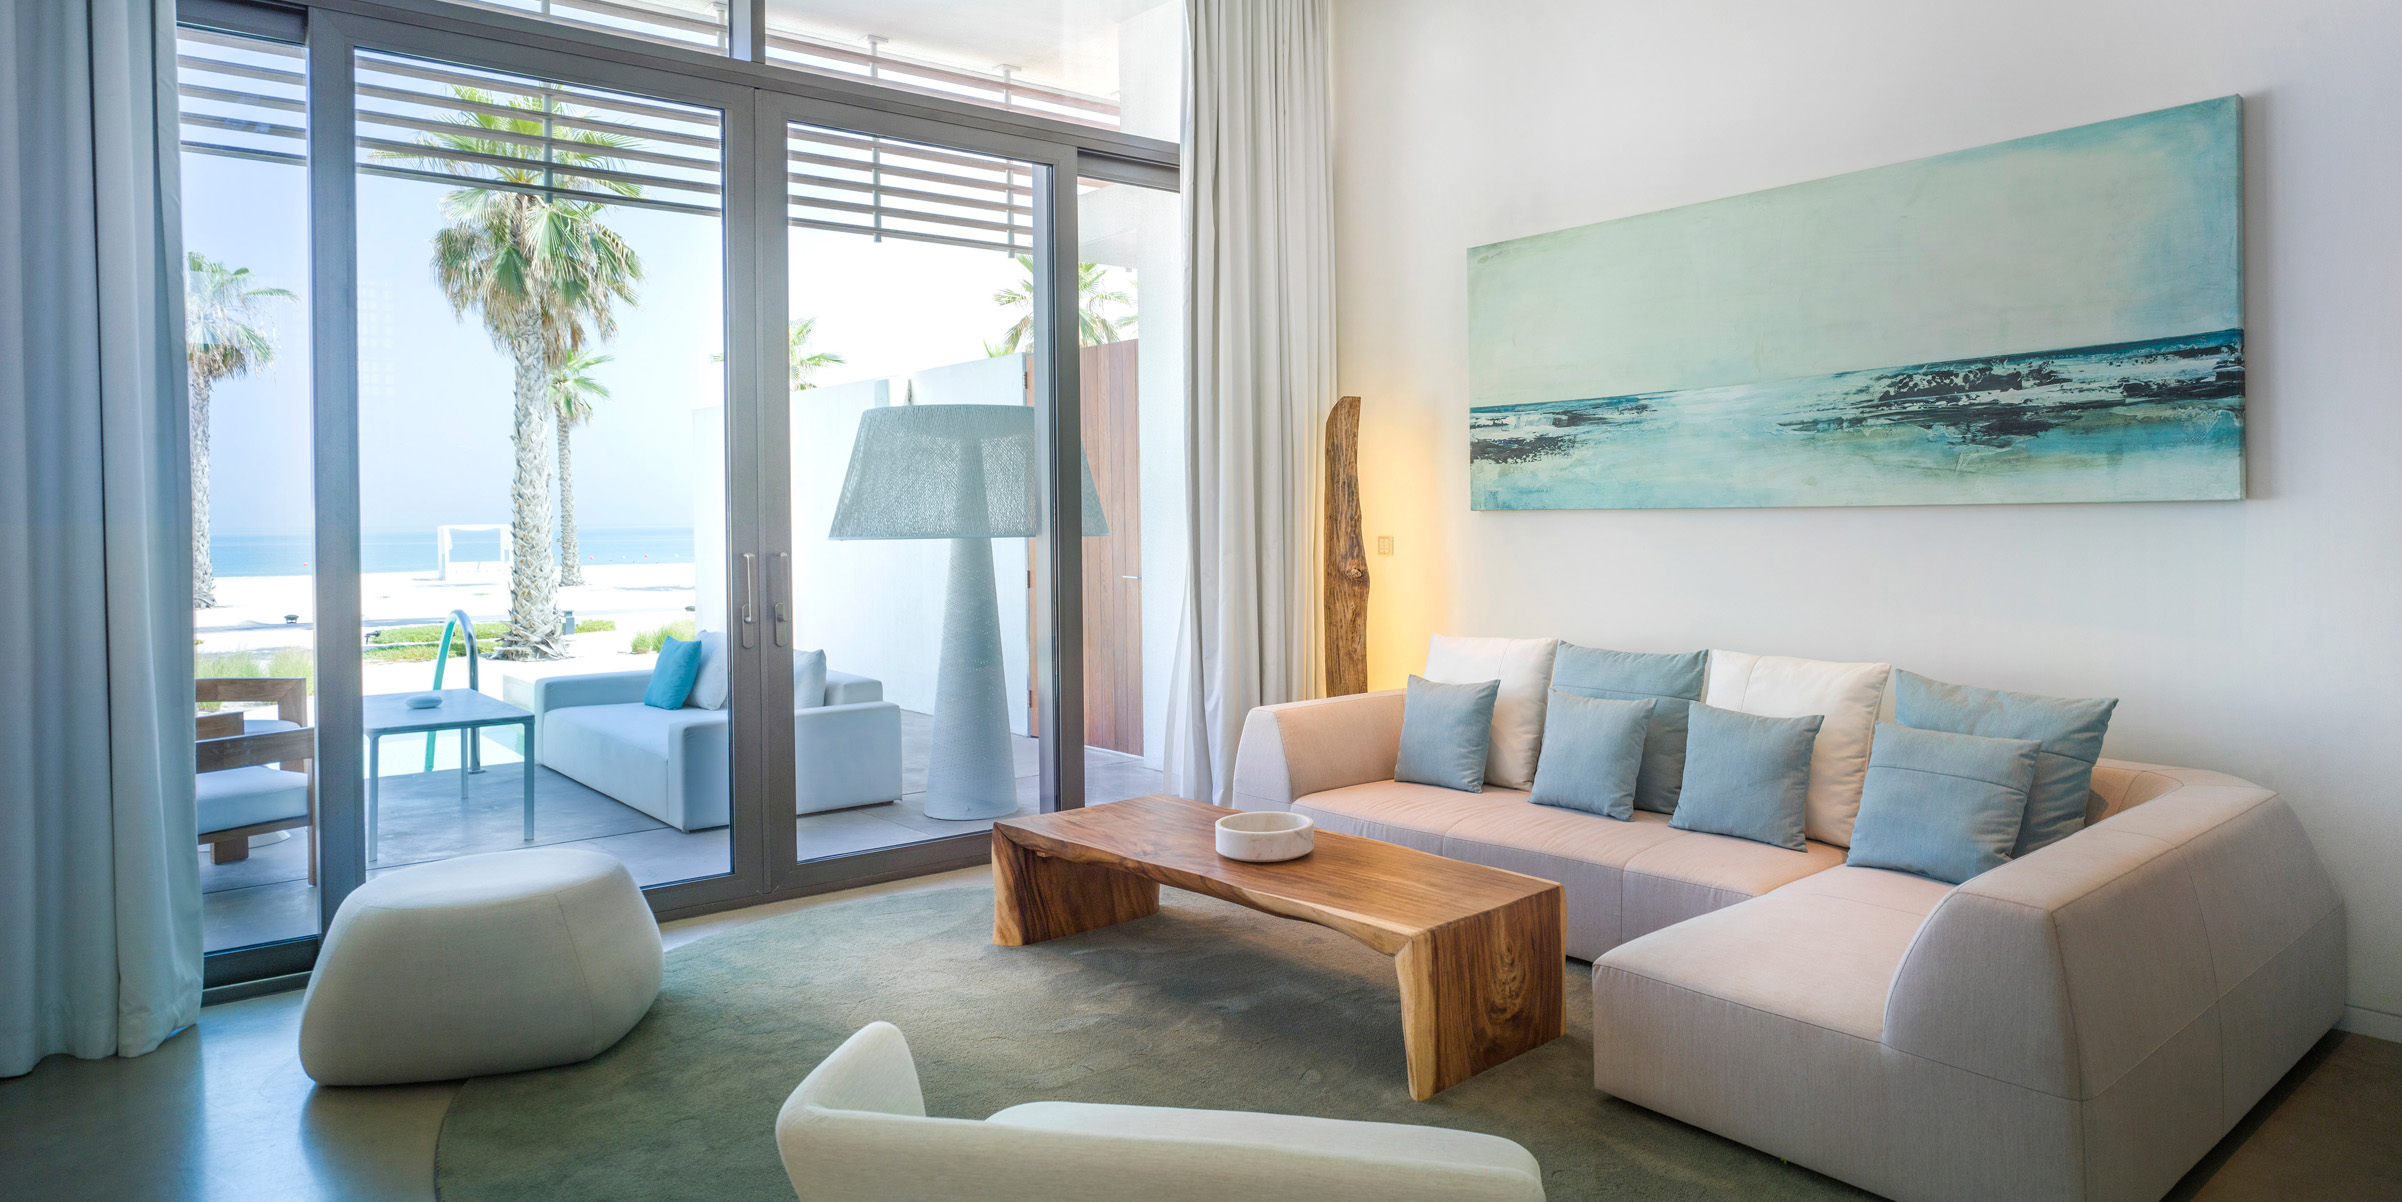 10-capsule-arts-projects-nikki-beach-room-painting-02.jpg